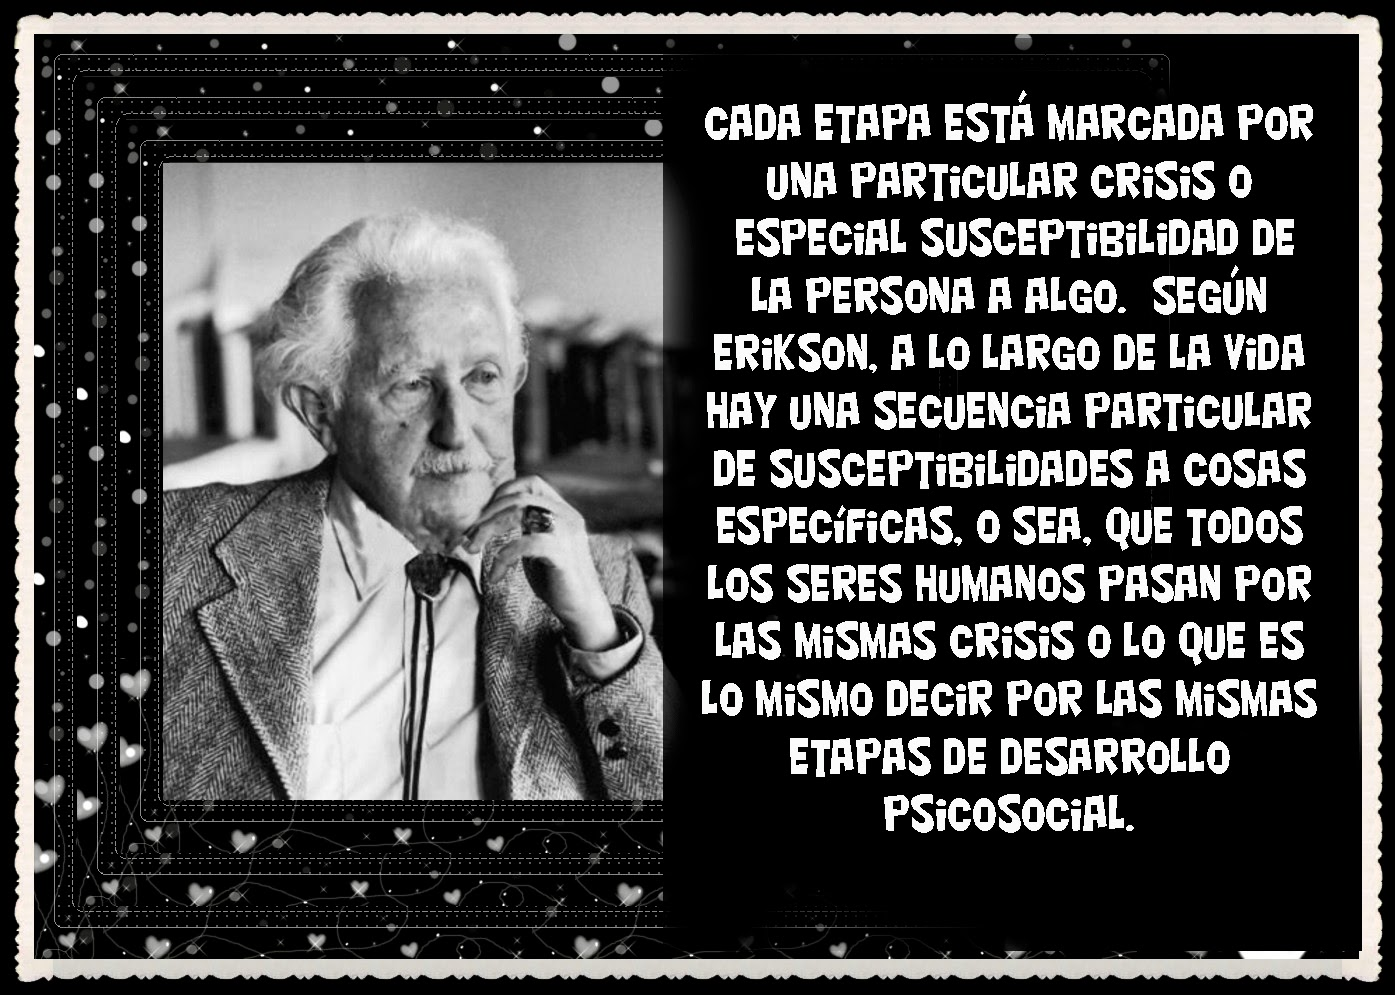 a biography of erik erikson Erik homburger erikson was a german-born american psychoanalyst and educator whose studies have perhaps contributed most to the understanding of the young on june 15, 1902, erik erikson was born in frankfurt am.